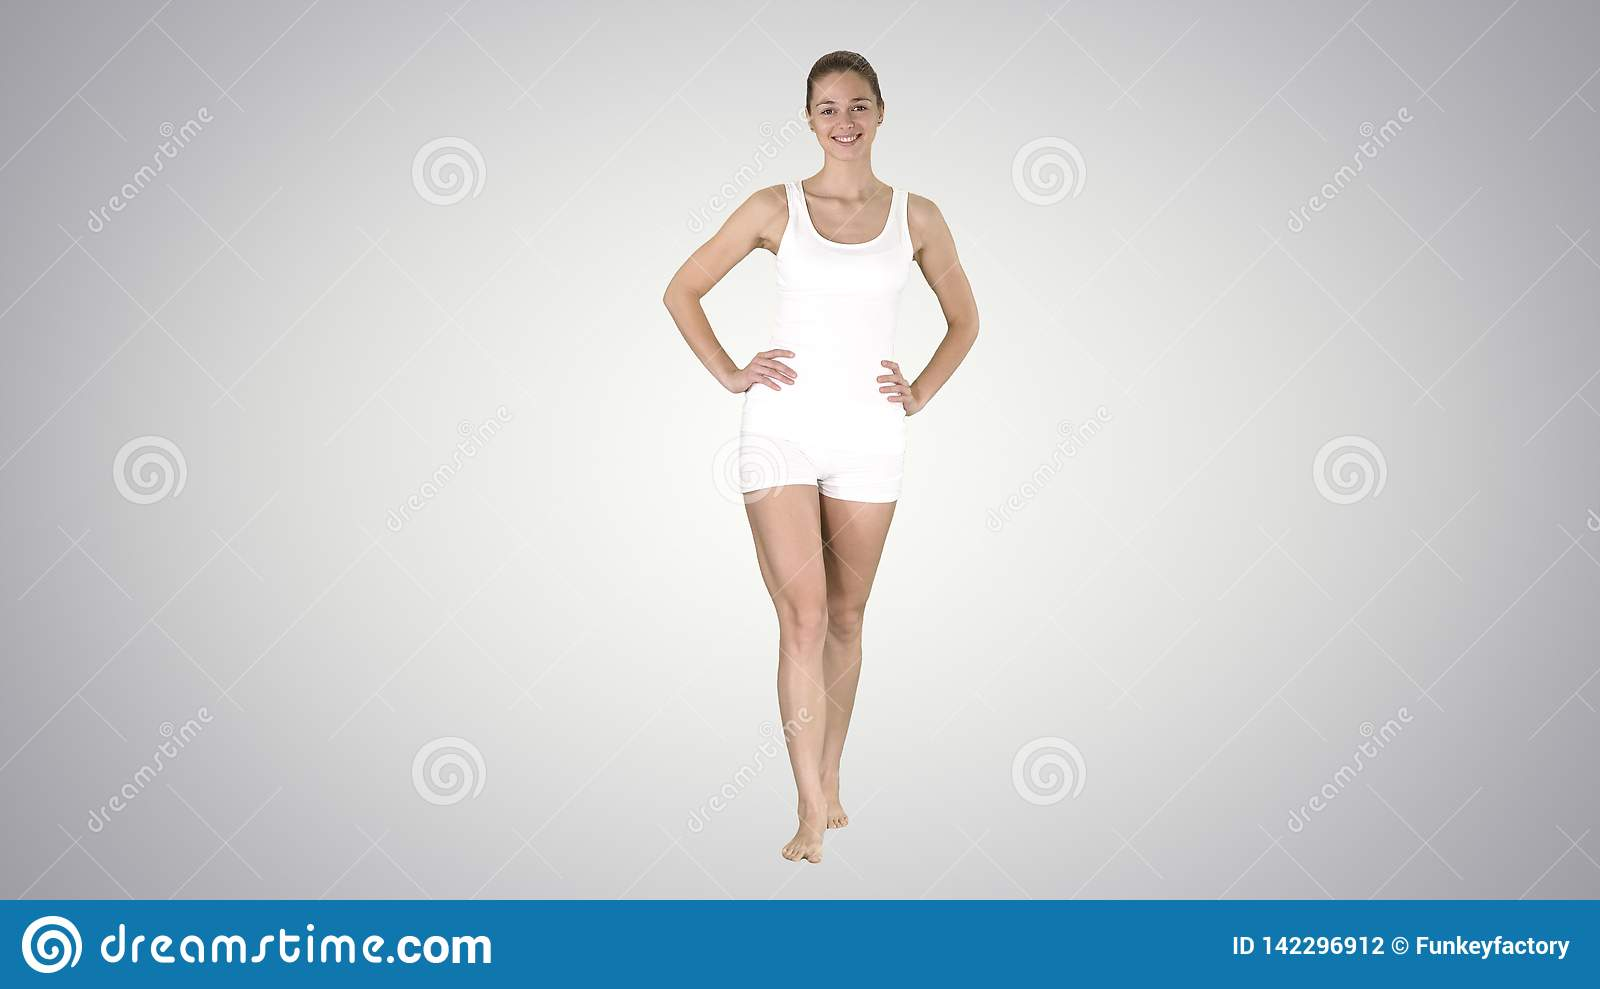 Fit and sporty girl in gradient underwear walking barefoot with hands on her hips on gradient background.